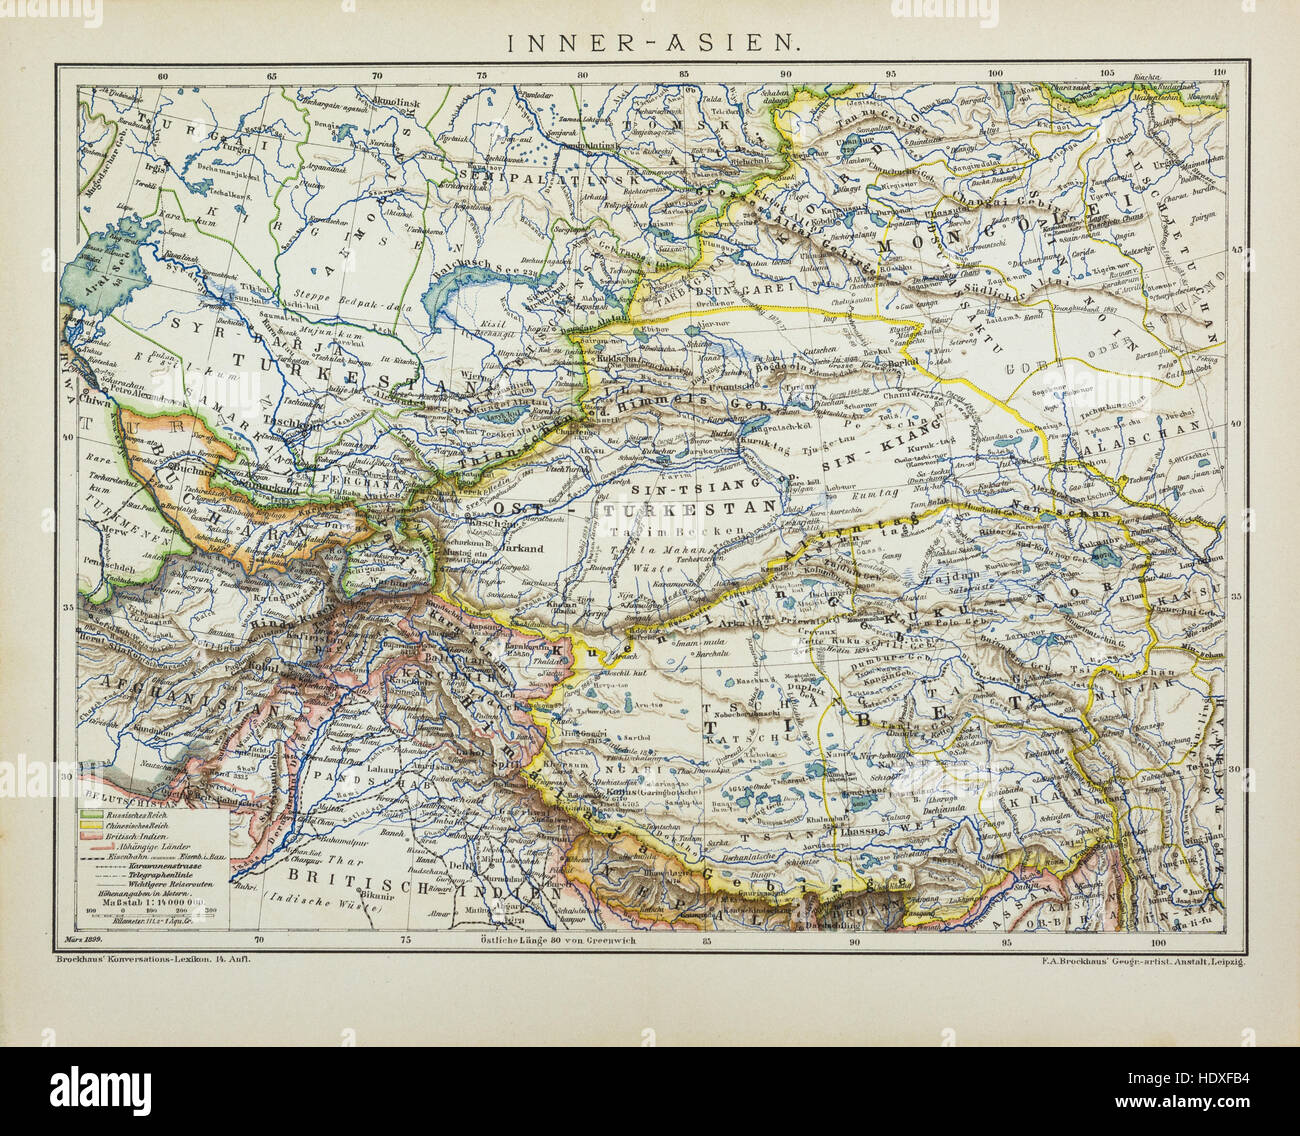 Central Asia antique map - Stock Image